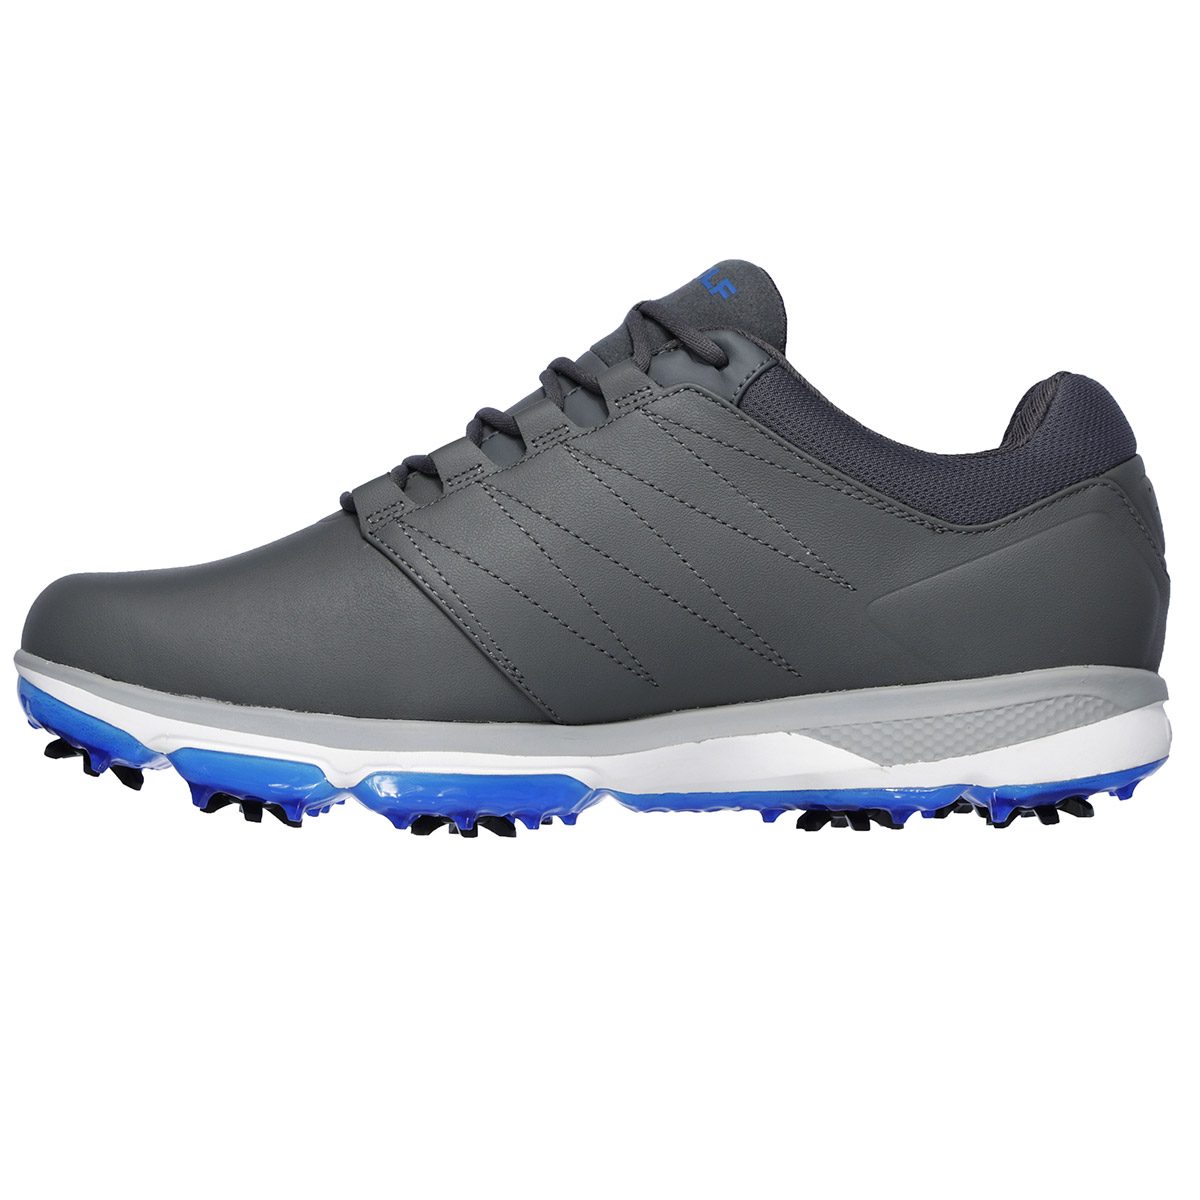 Skechers Go Golf Pro 4 Shoes from